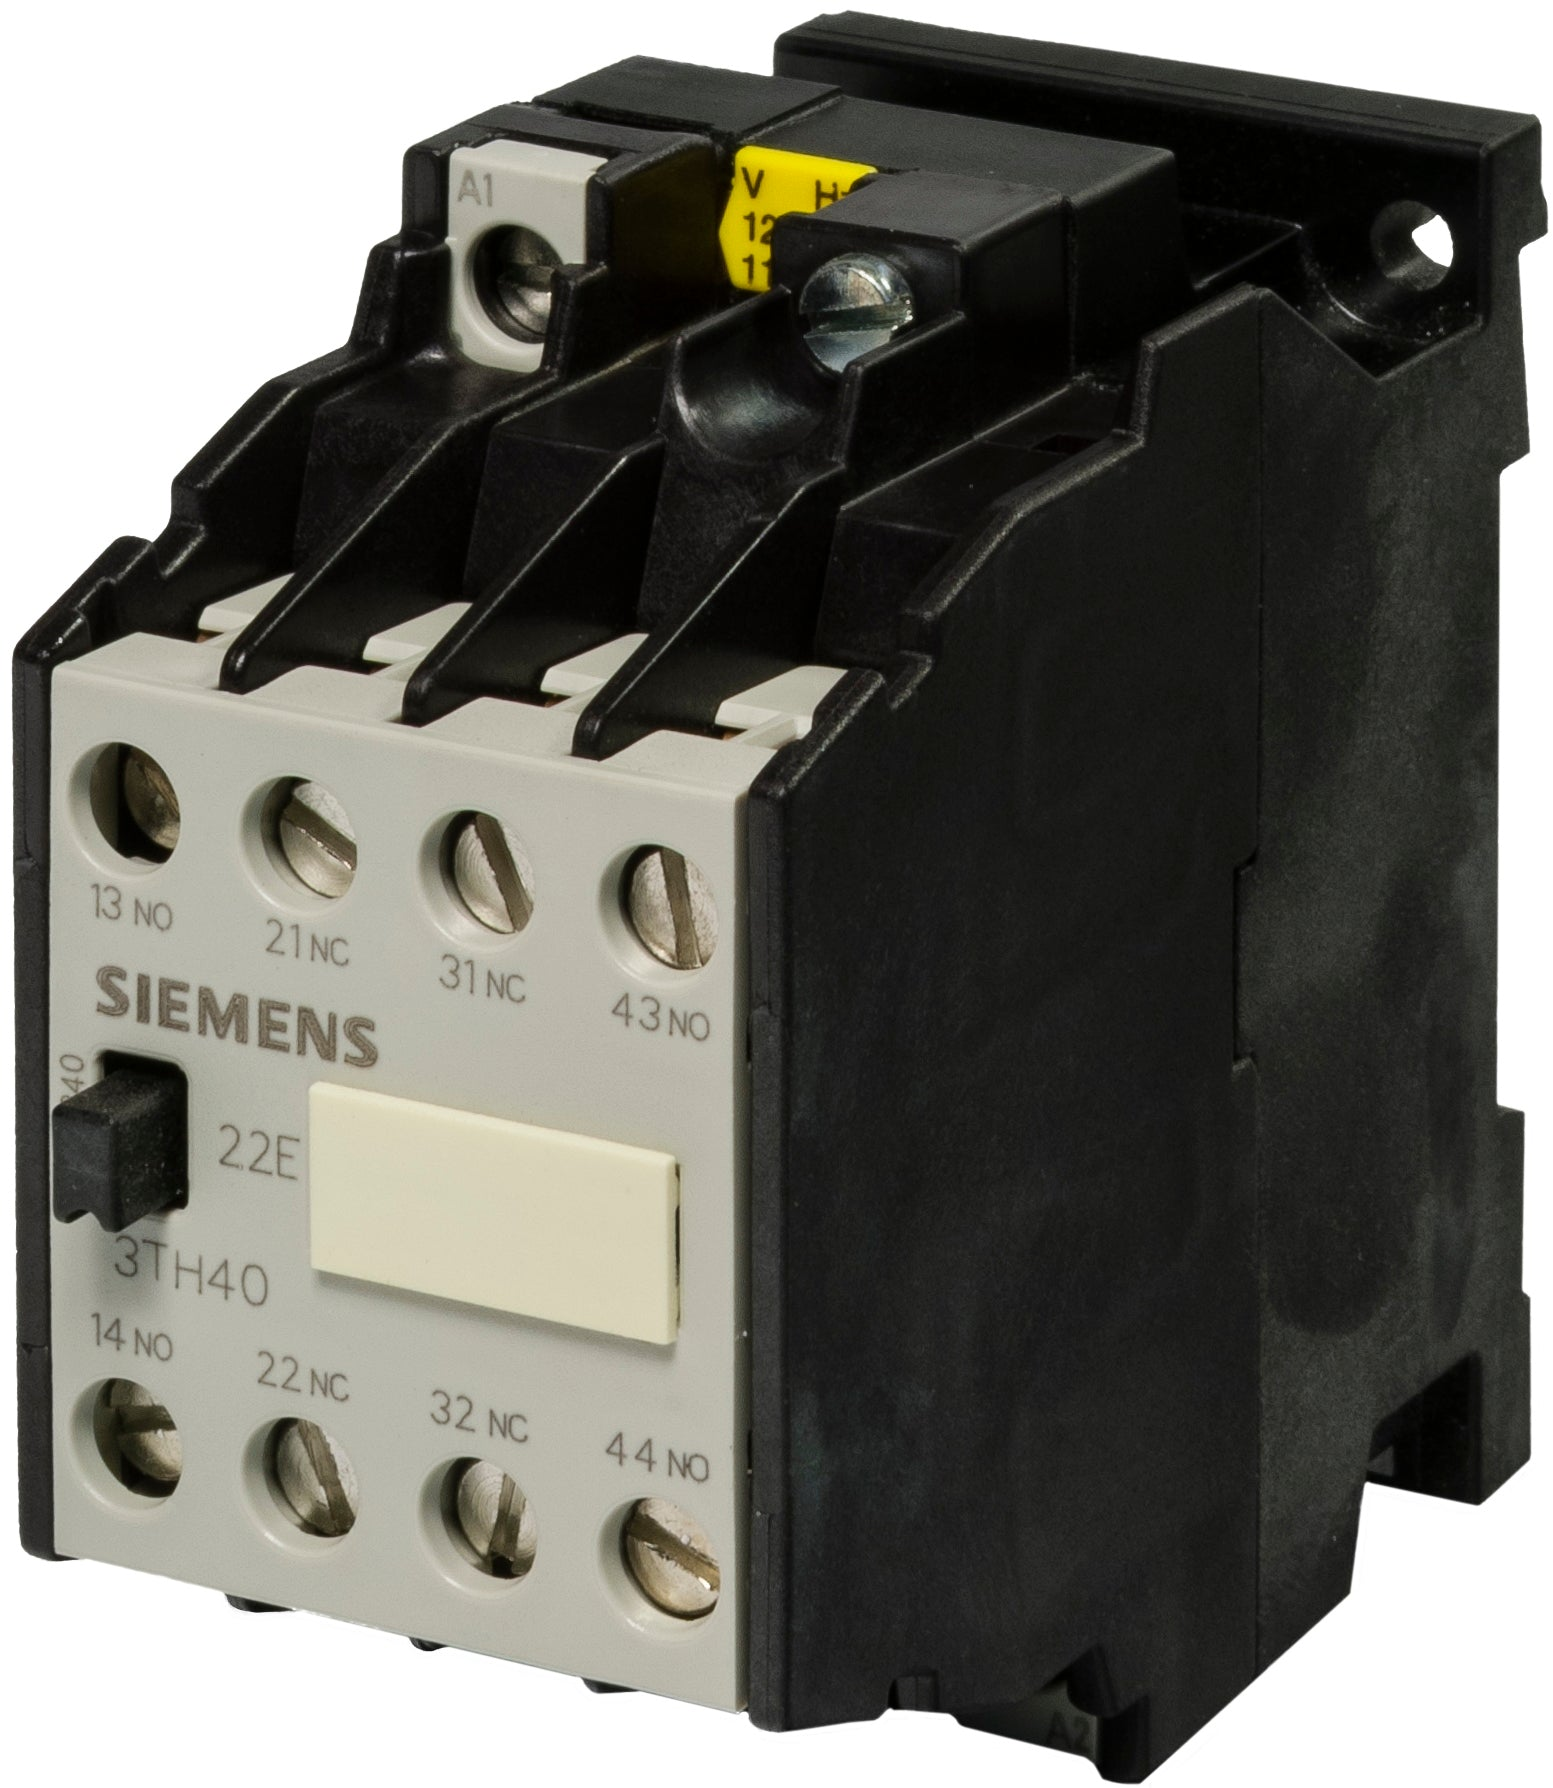 3TH4022-0A Siemens Control Relay